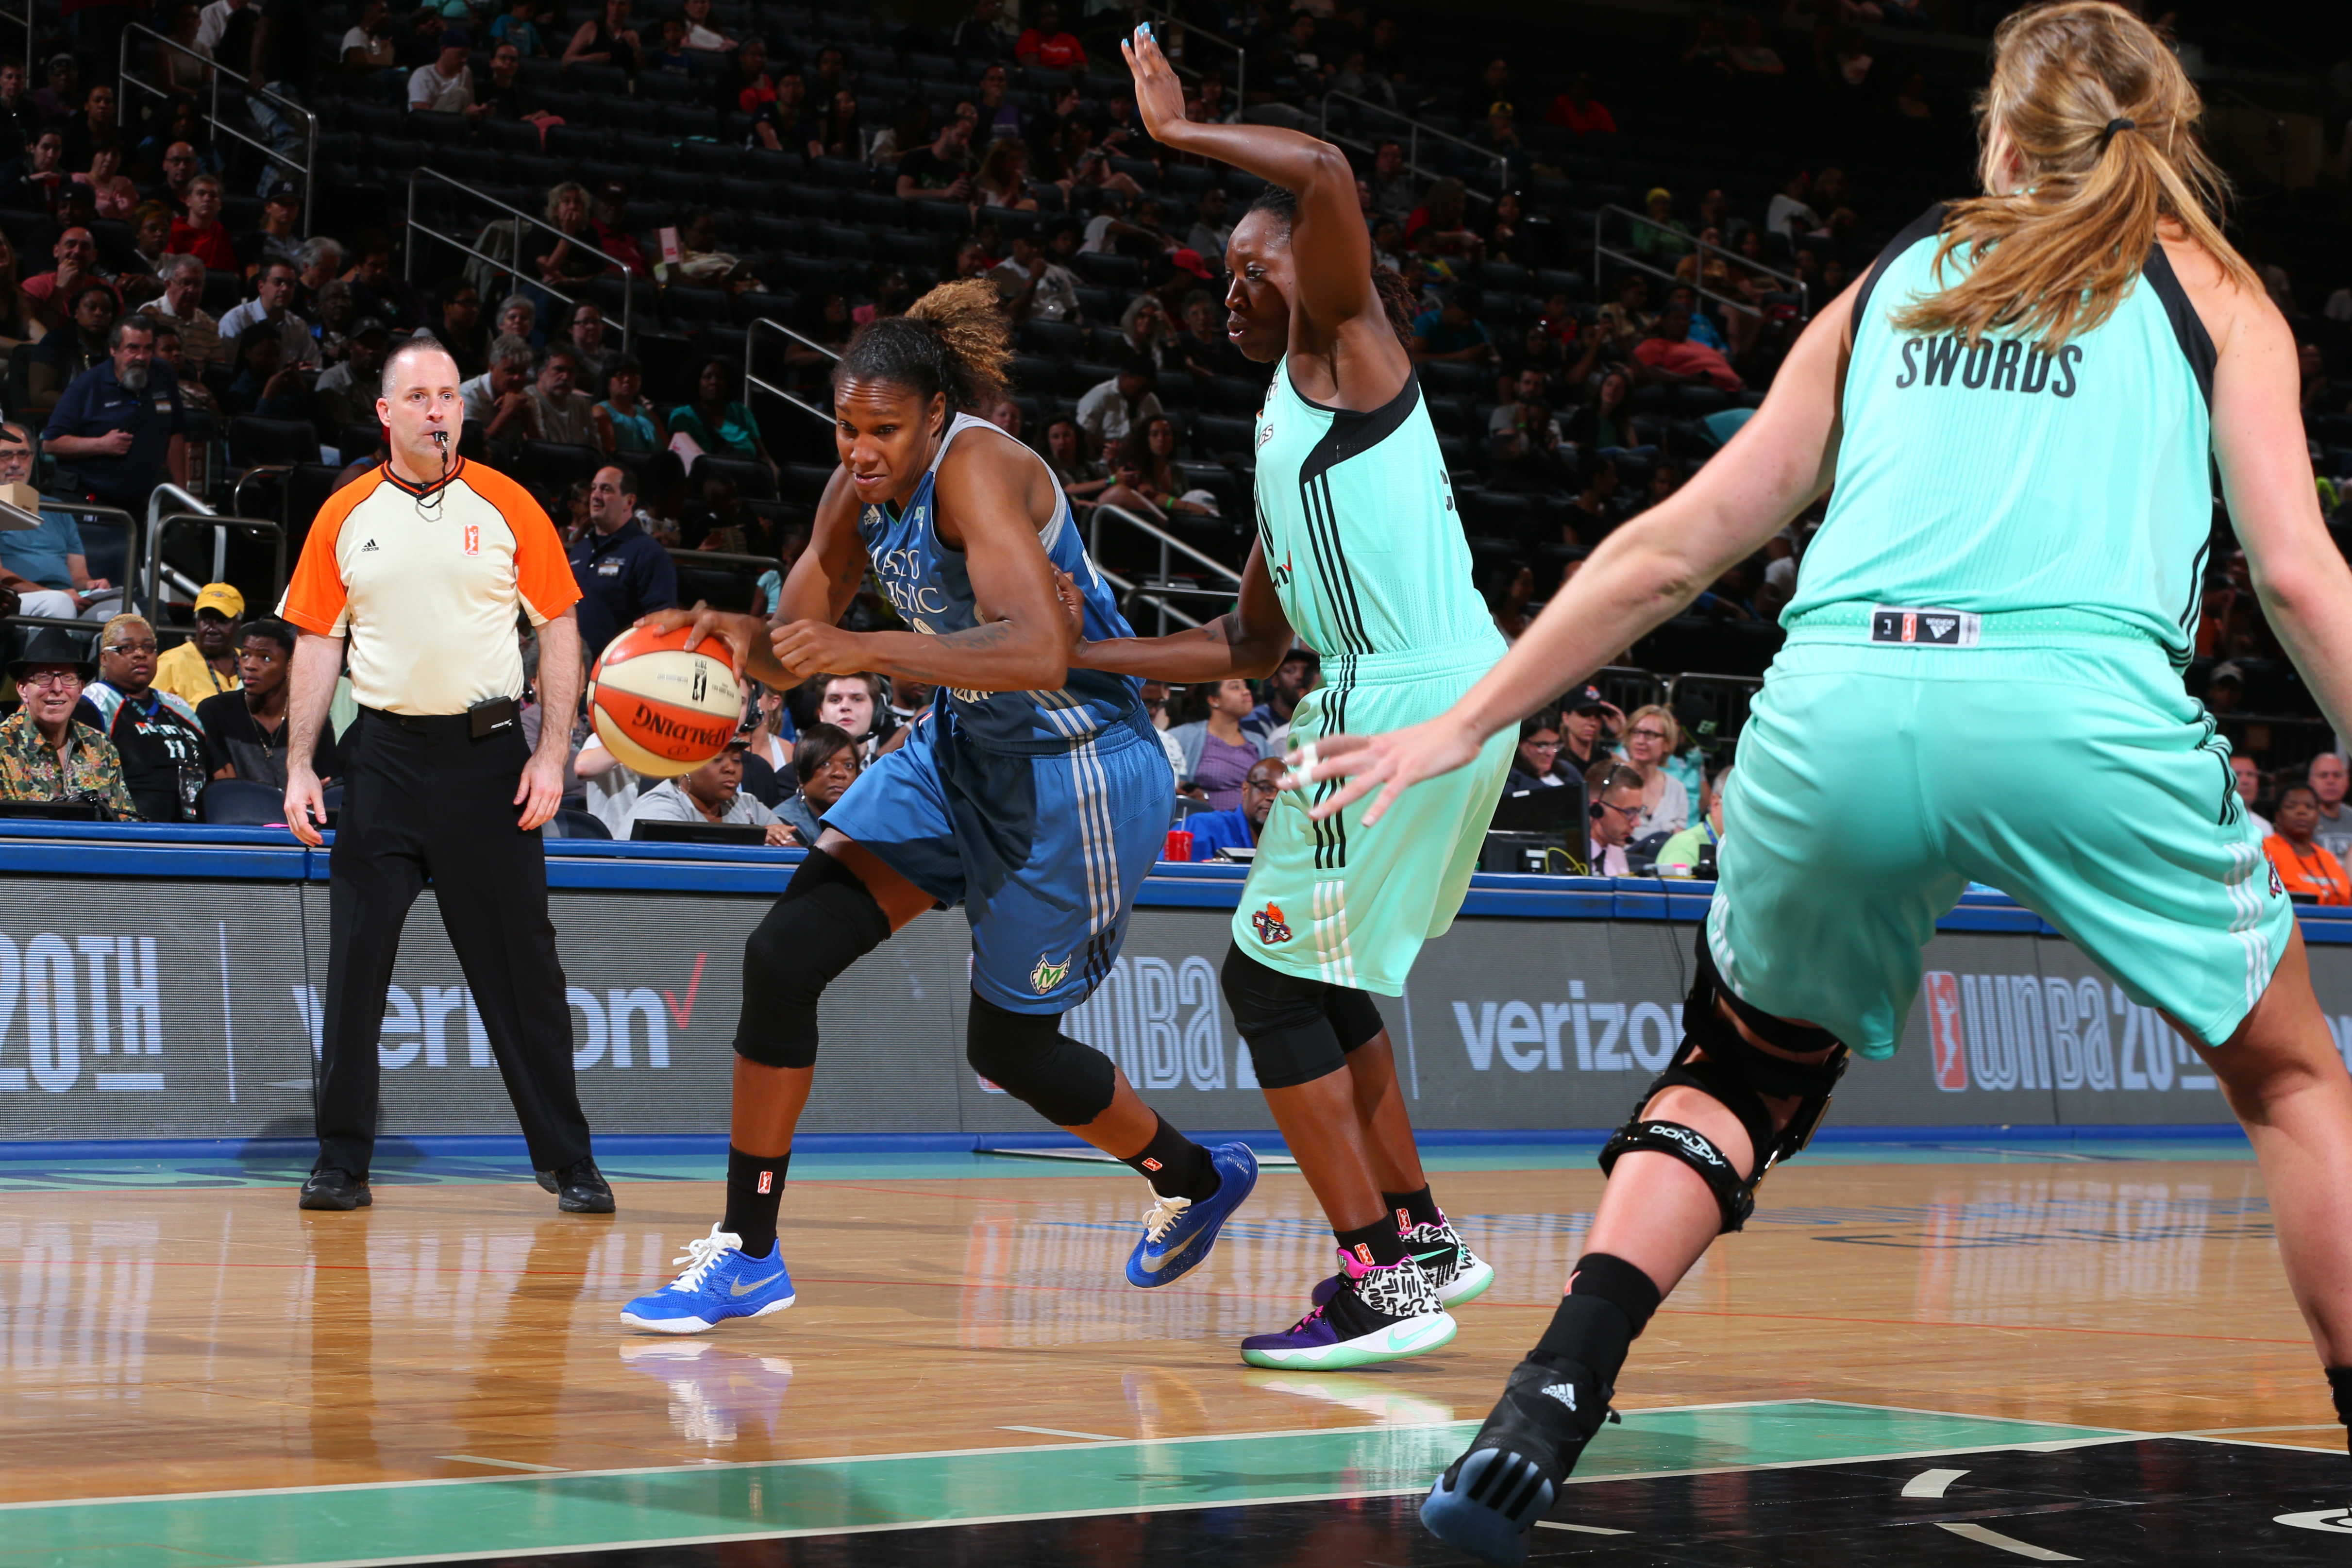 NEW YORK, NY - MAY 31: Rebekkah Brunson #32 of the Minnesota Lynx drives to the basket against the New York Liberty during the game on May 31, 2016 at Madison Square Garden in New York, New York. NOTE TO USER: User expressly acknowledges and agrees that, by downloading and or using this Photograph, user is consenting to the terms and conditions of the Getty Images License Agreement. Mandatory Copyright Notice: Copyright 2016 NBAE (Photo by Mike Stobe/NBAE via Getty Images)